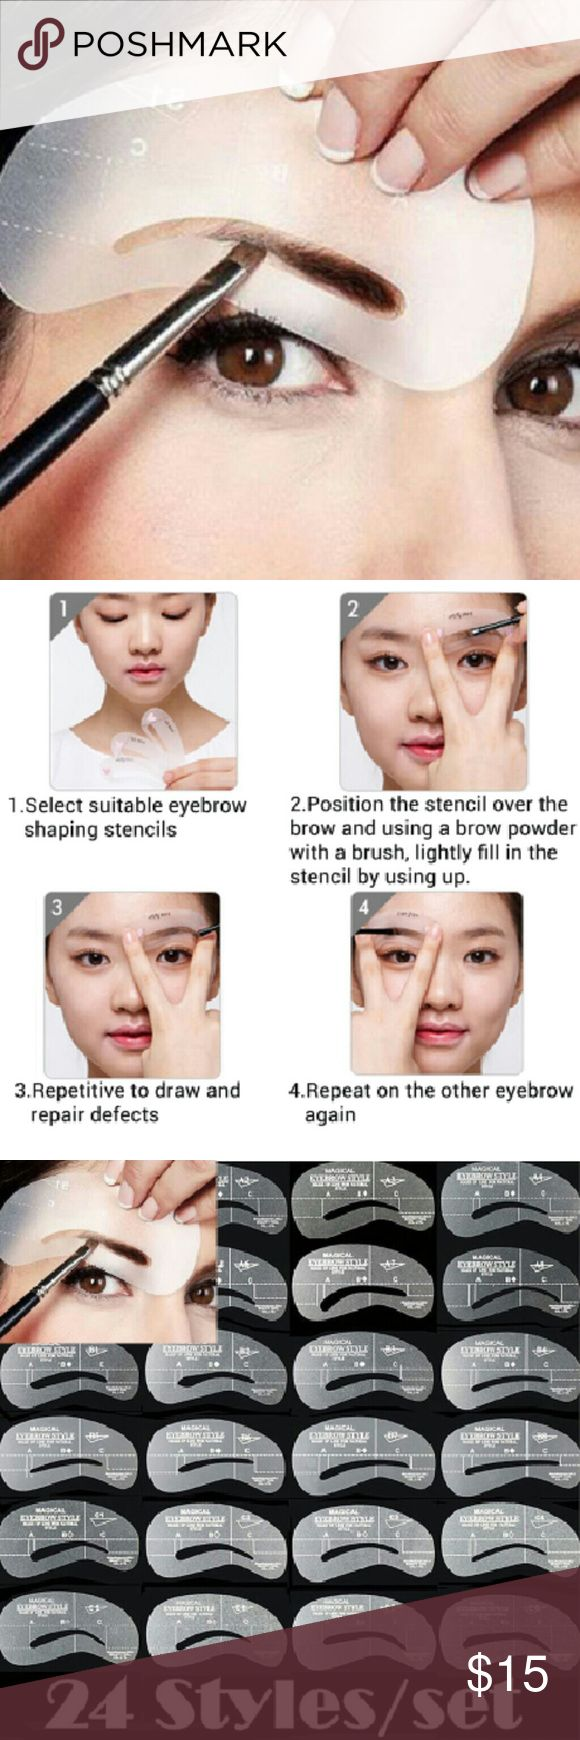 24 Eyebrow Stencil Template Makeup Beauty Tool 24 different Stencil:  (6 Different sets, Every set includes 4 different Stencils)  Material: Resin, ABS Material Size: 10x5 cm Main?Color: Clear  Package Includes: 6 Sets of Eyebrow Stencils (24 Styles Included) Makeup Brushes & Tools